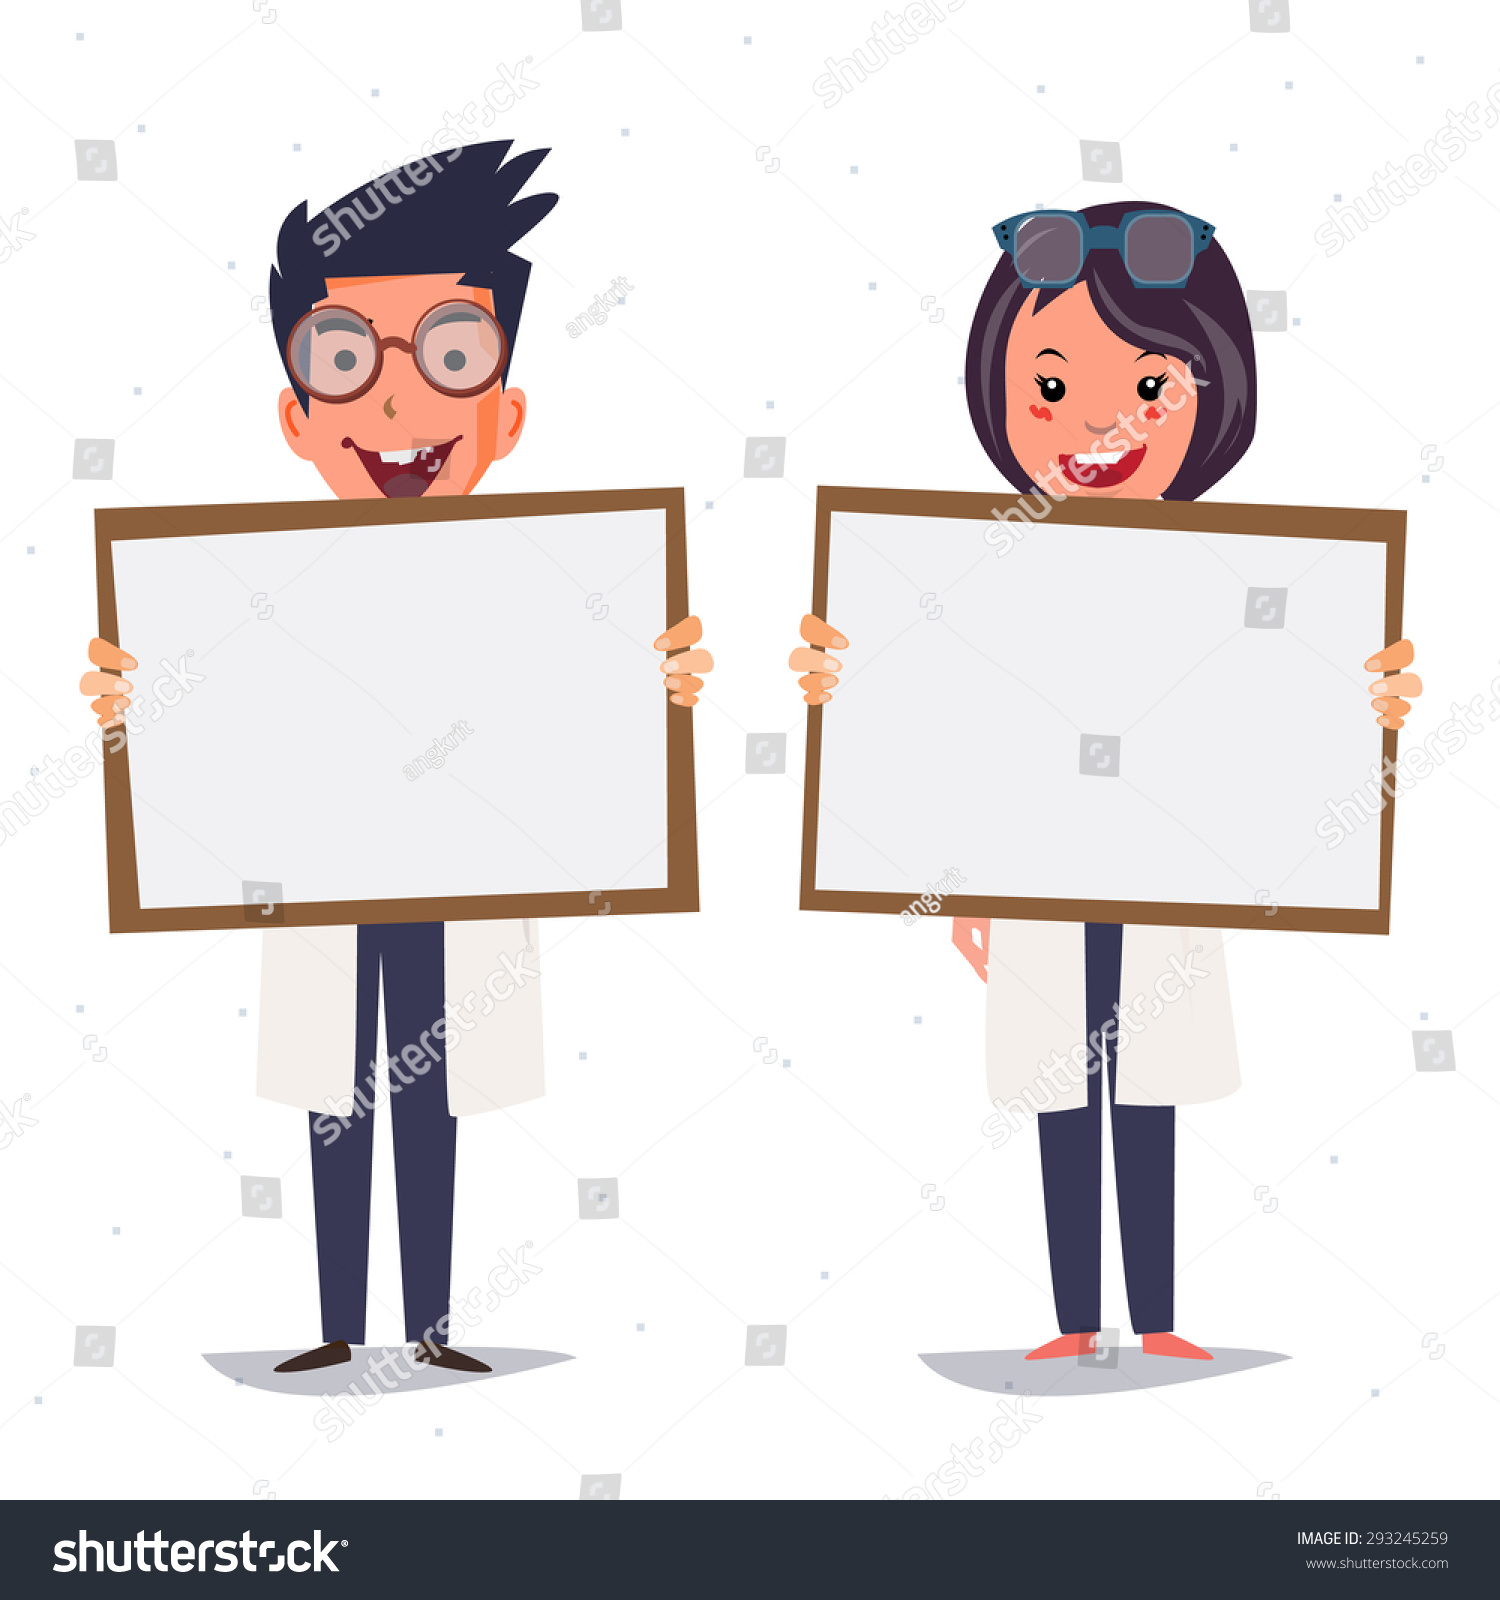 Character Design Presentation : Doctor couple holding paper board presentation stock